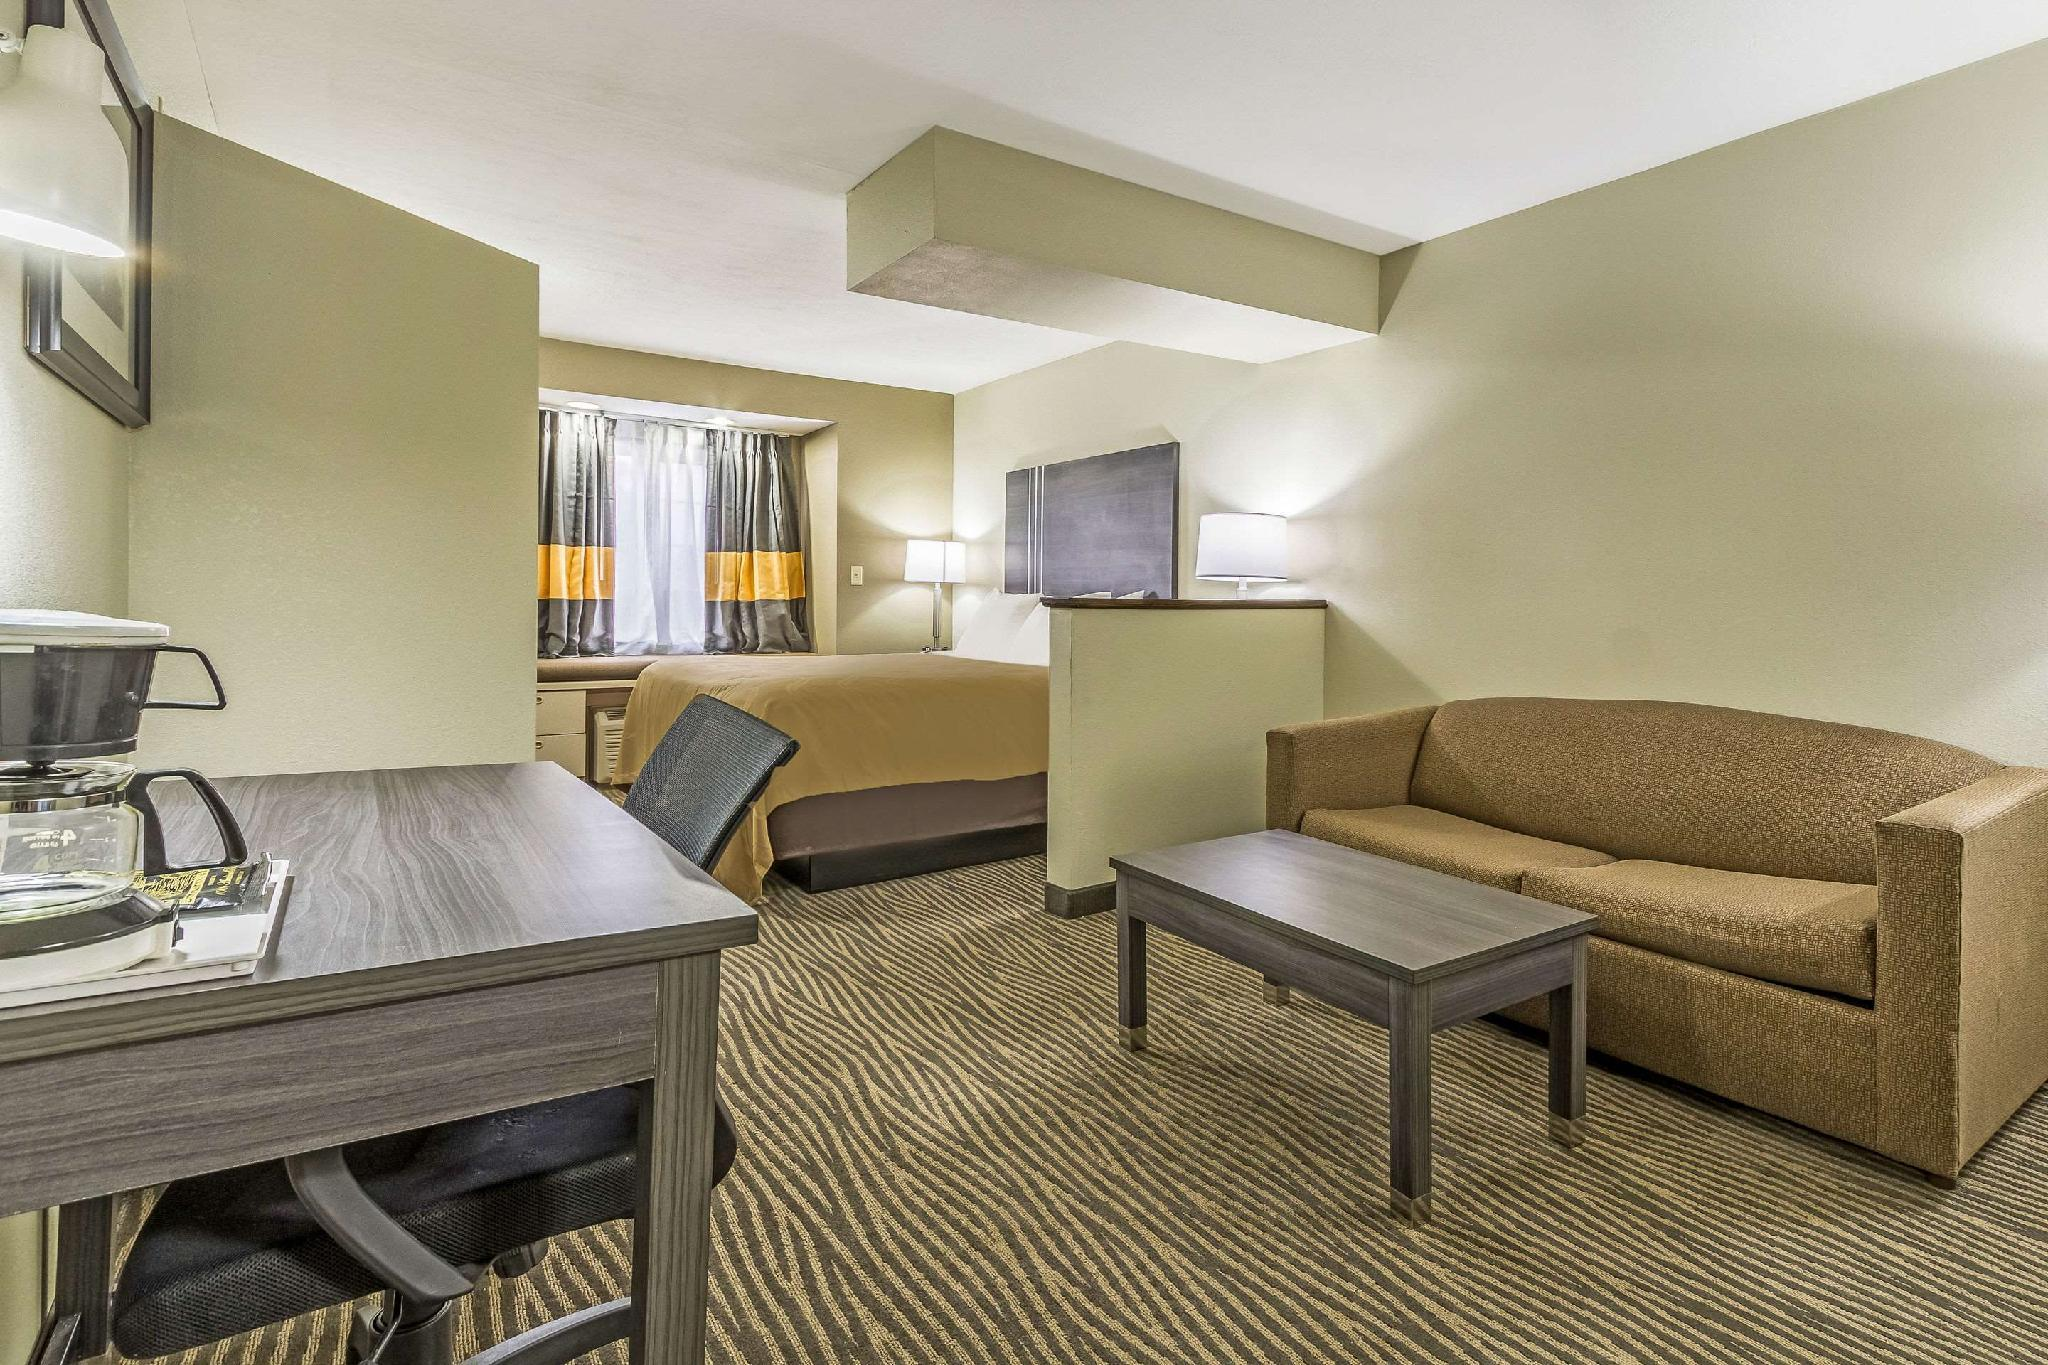 Quality Inn & Suites North Lima - Boardman, Mahoning